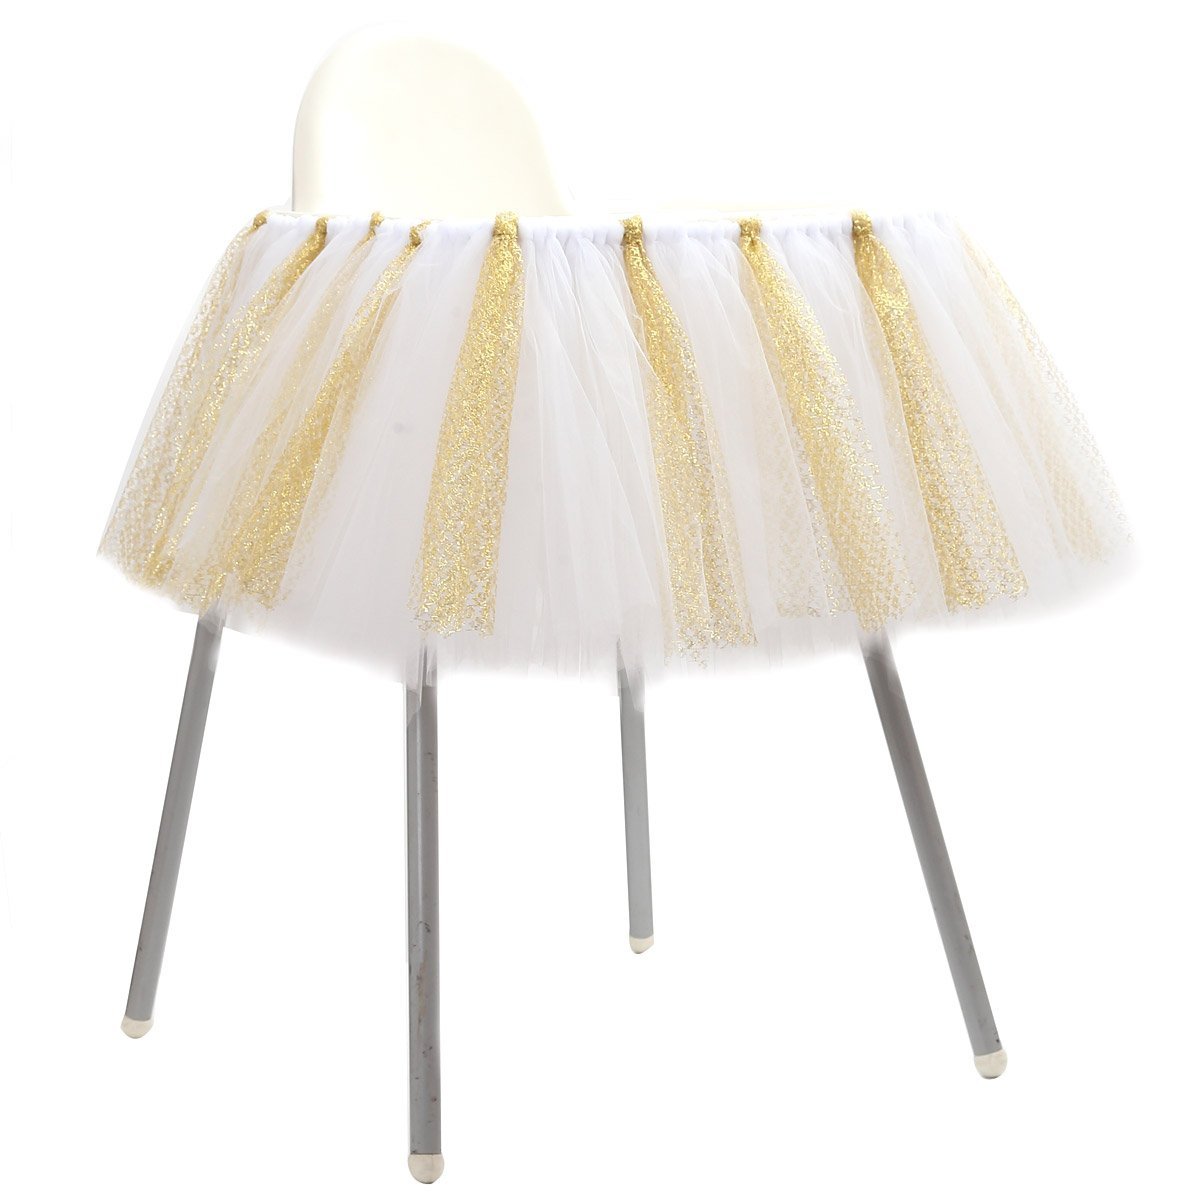 ZL Magic Handmade Glitter Soft Tulle Tutu Skirt High Chair Decoration for Baby 1st Birthday Party Baby Party Supplies (White & Gold - No Banner)